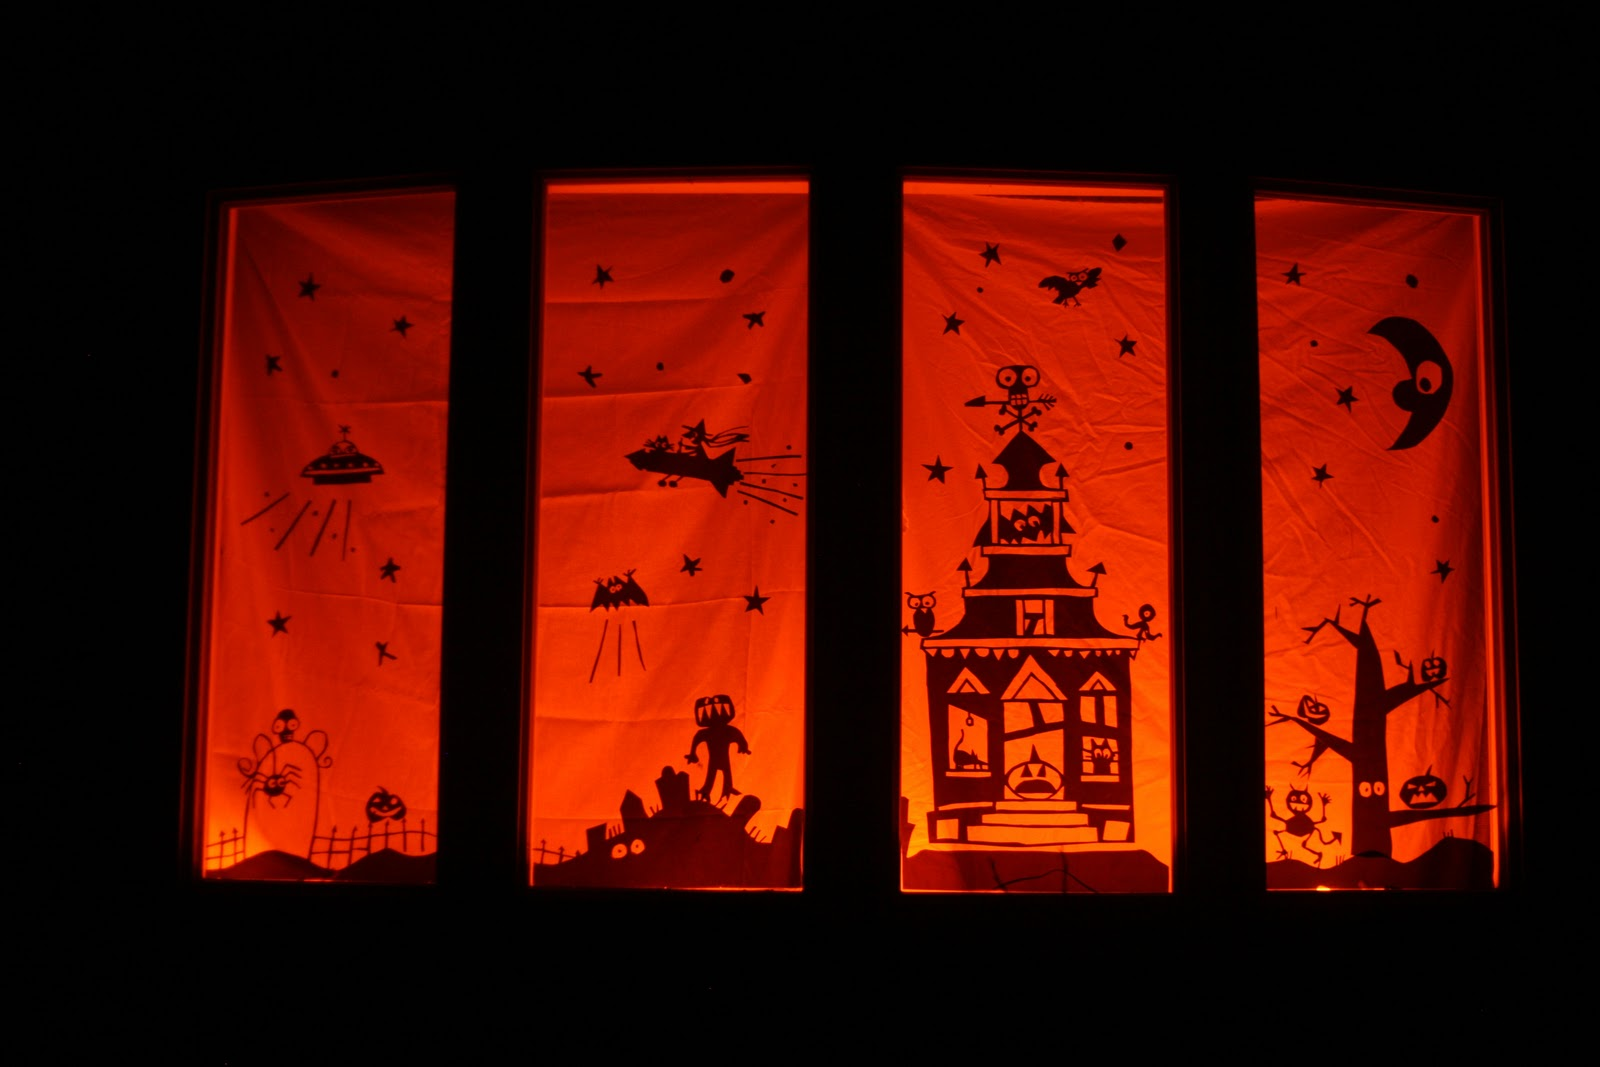 halloween window clings tutorial - Halloween Window Clings